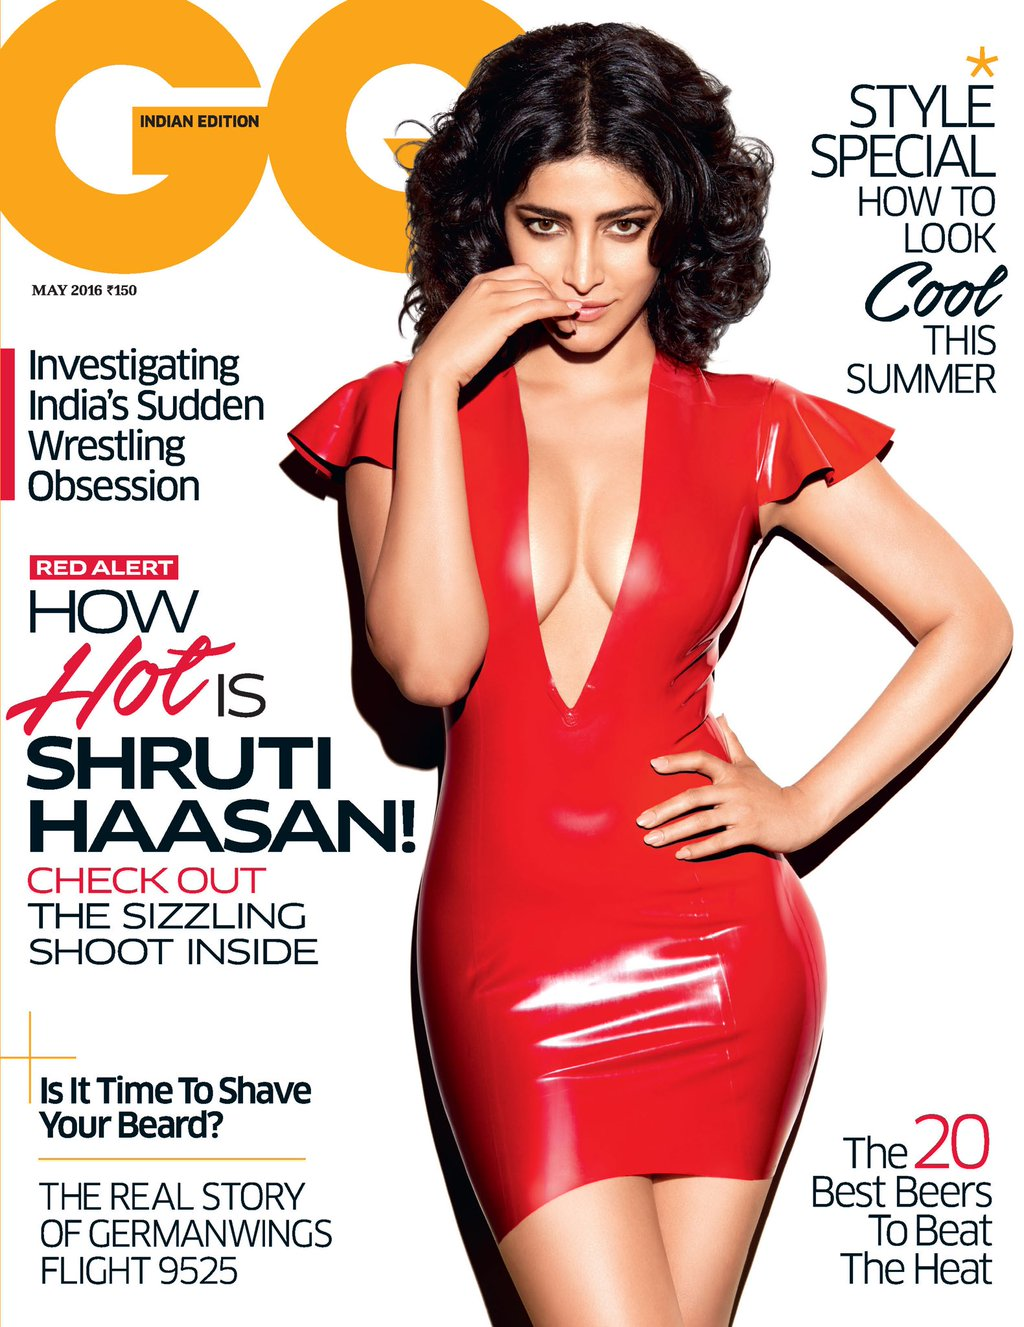 Shruti Haasan On The Cover Of GQ Magazine India May 2016